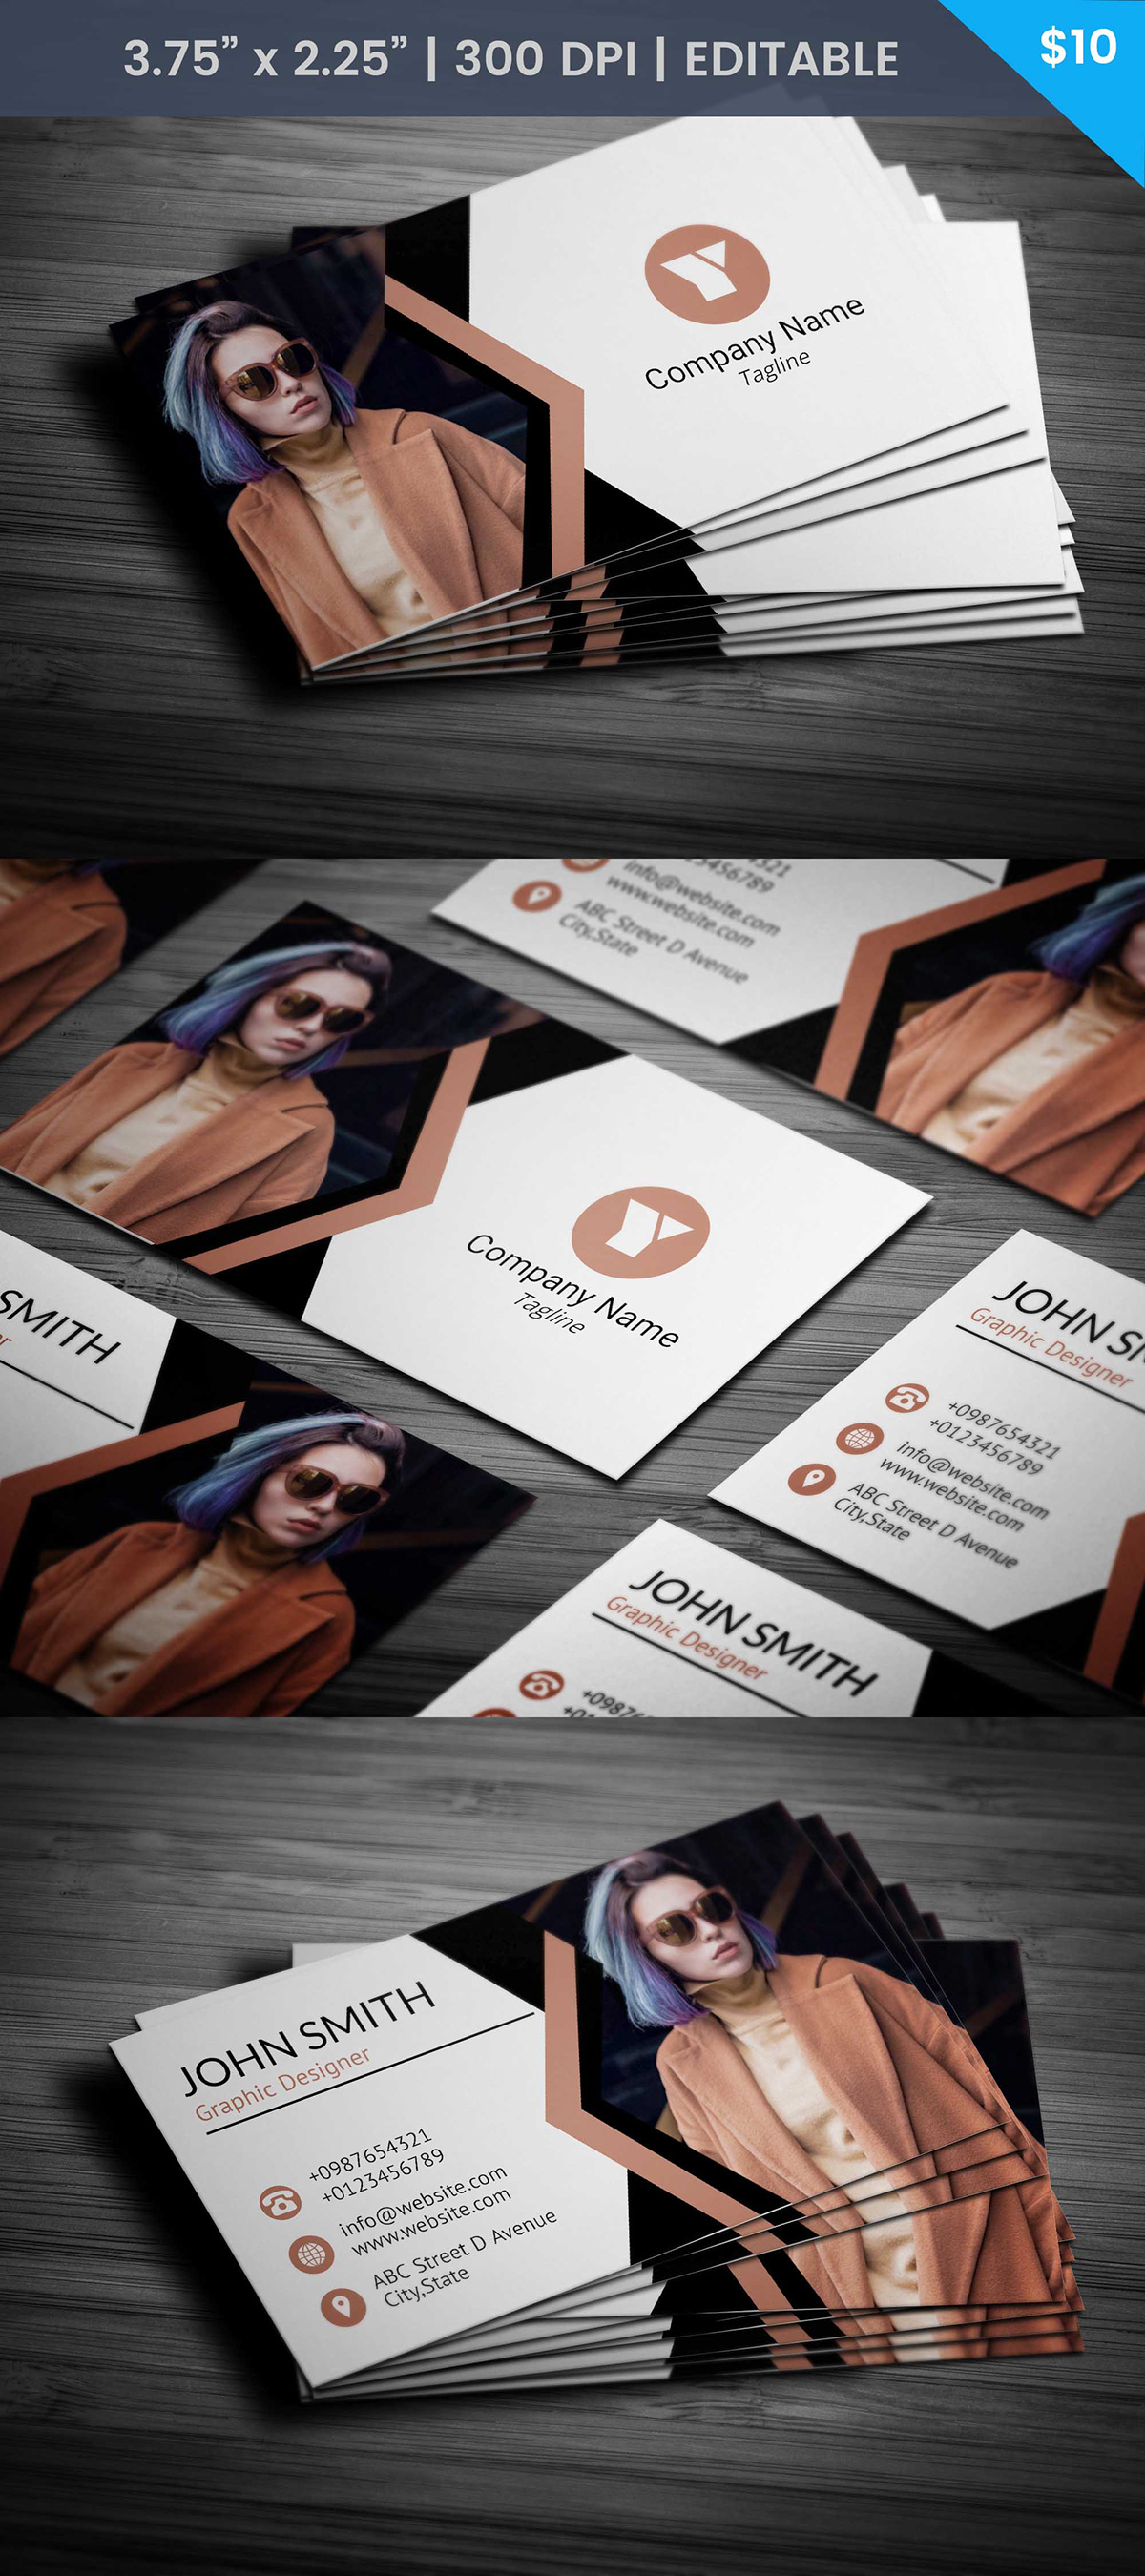 Fashion blogger business card on pantone canvas gallery fashion blogger business card colourmoves